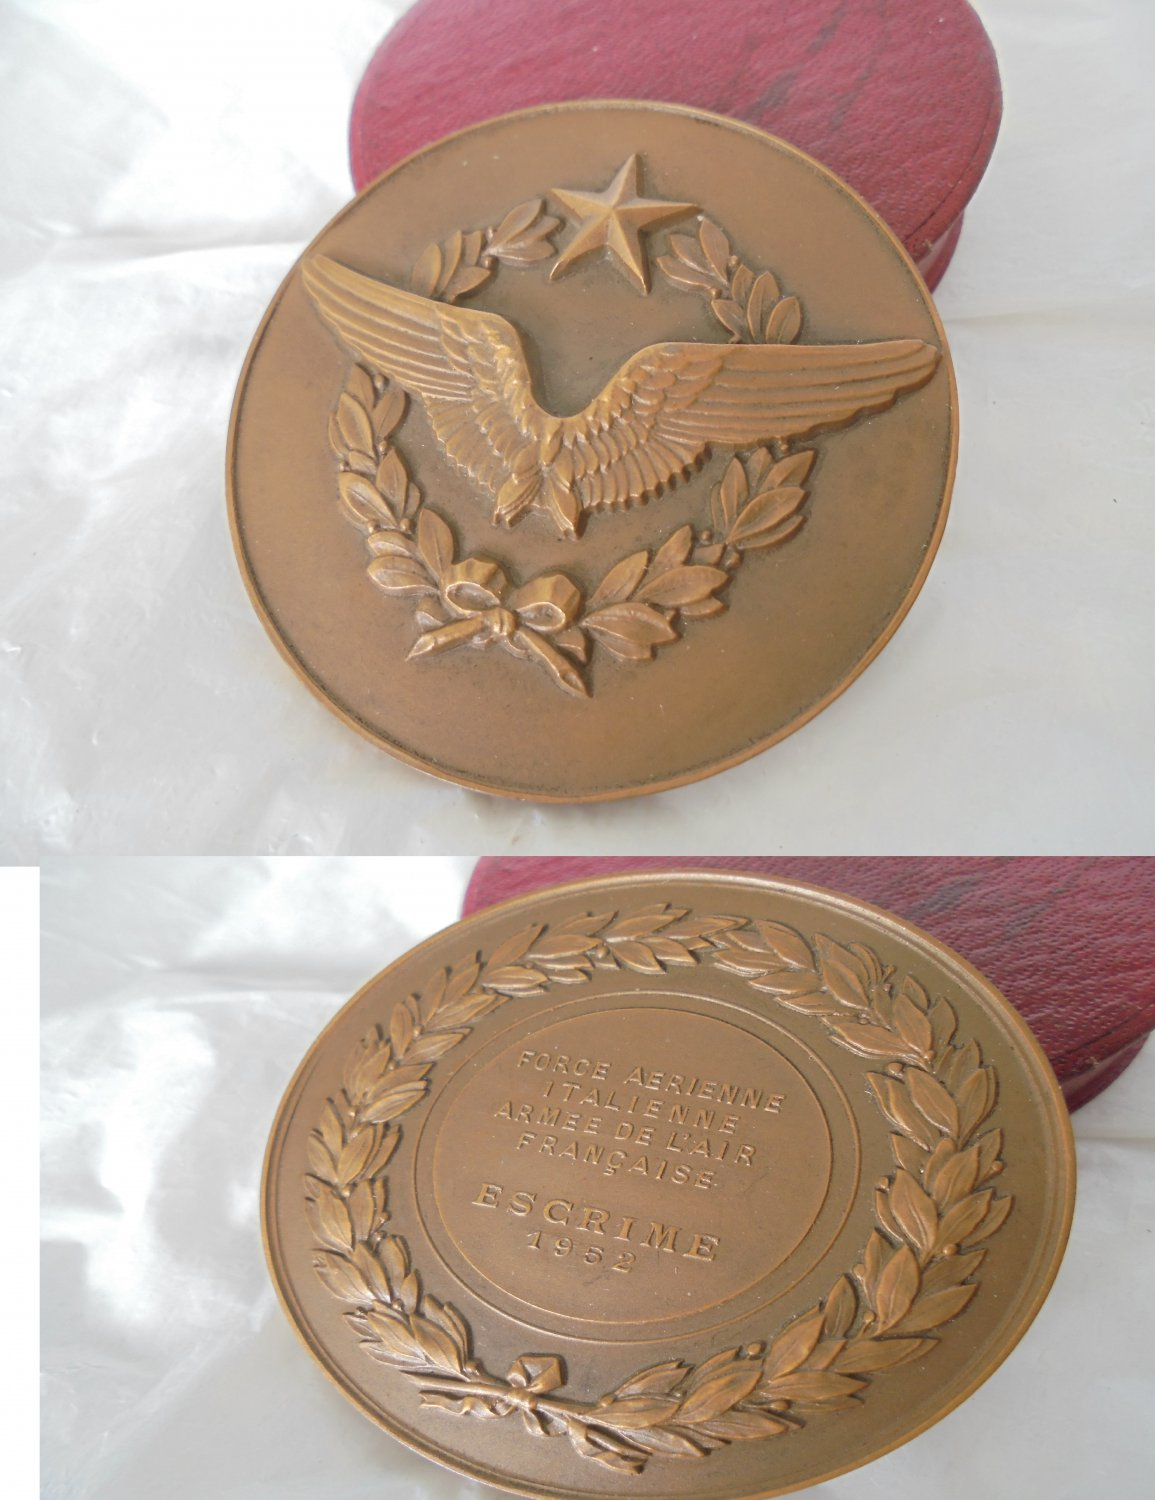 French BRONZE MEDAL of the Military French and Italian airforce Original 1952